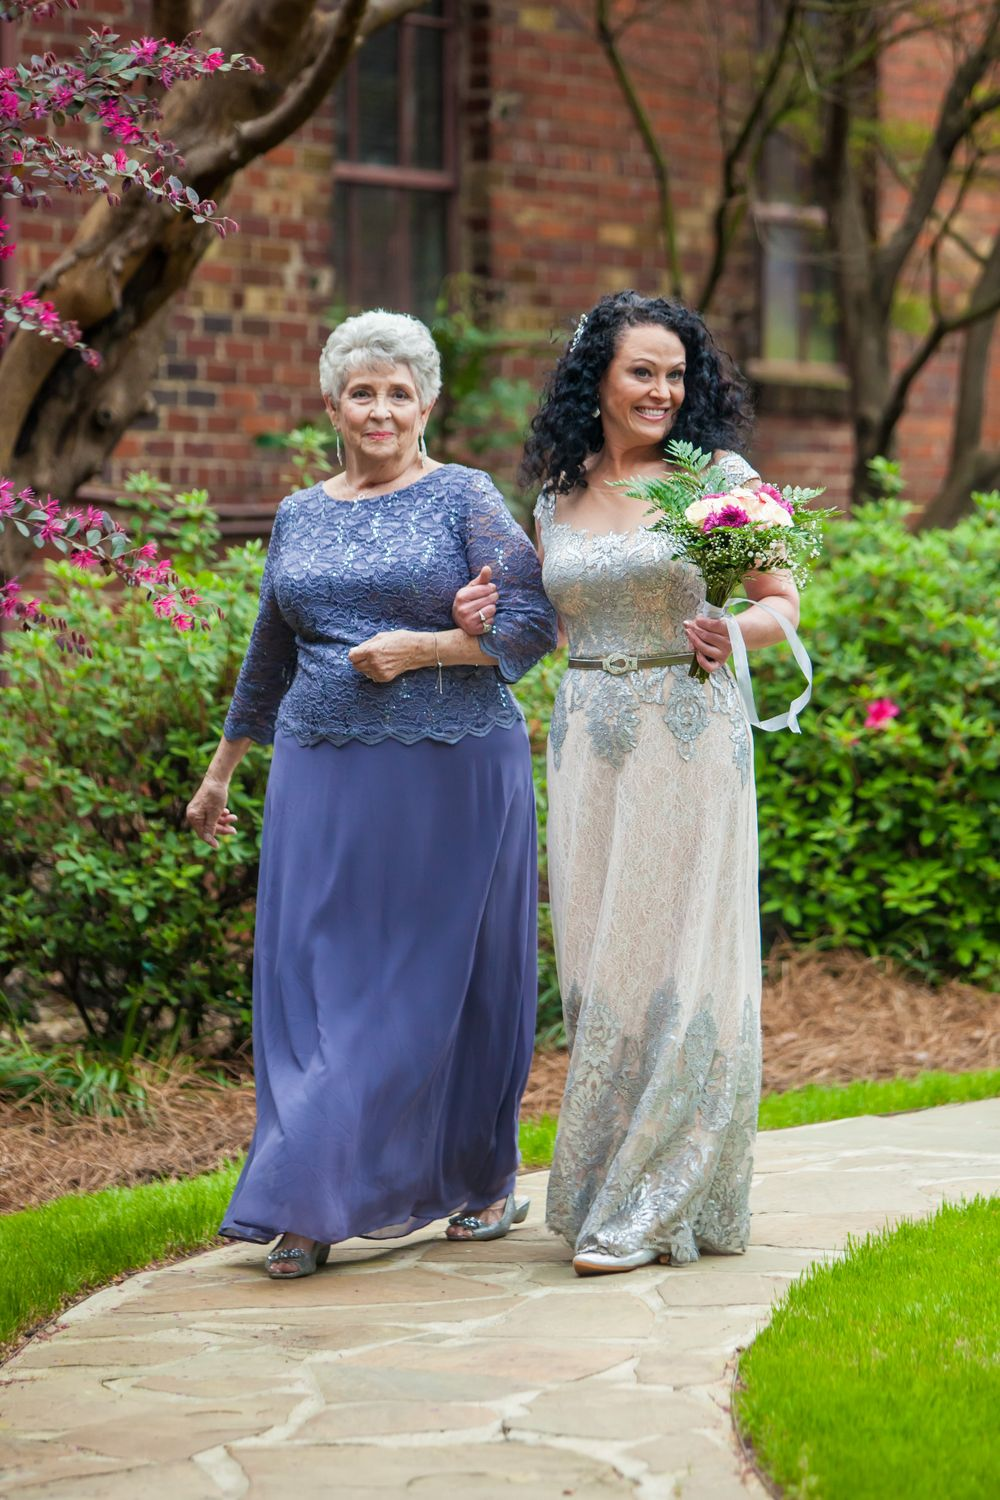 Bride is walked down the aisle by her mother during a wedding ceremony at Senate's End in Columbia, sC